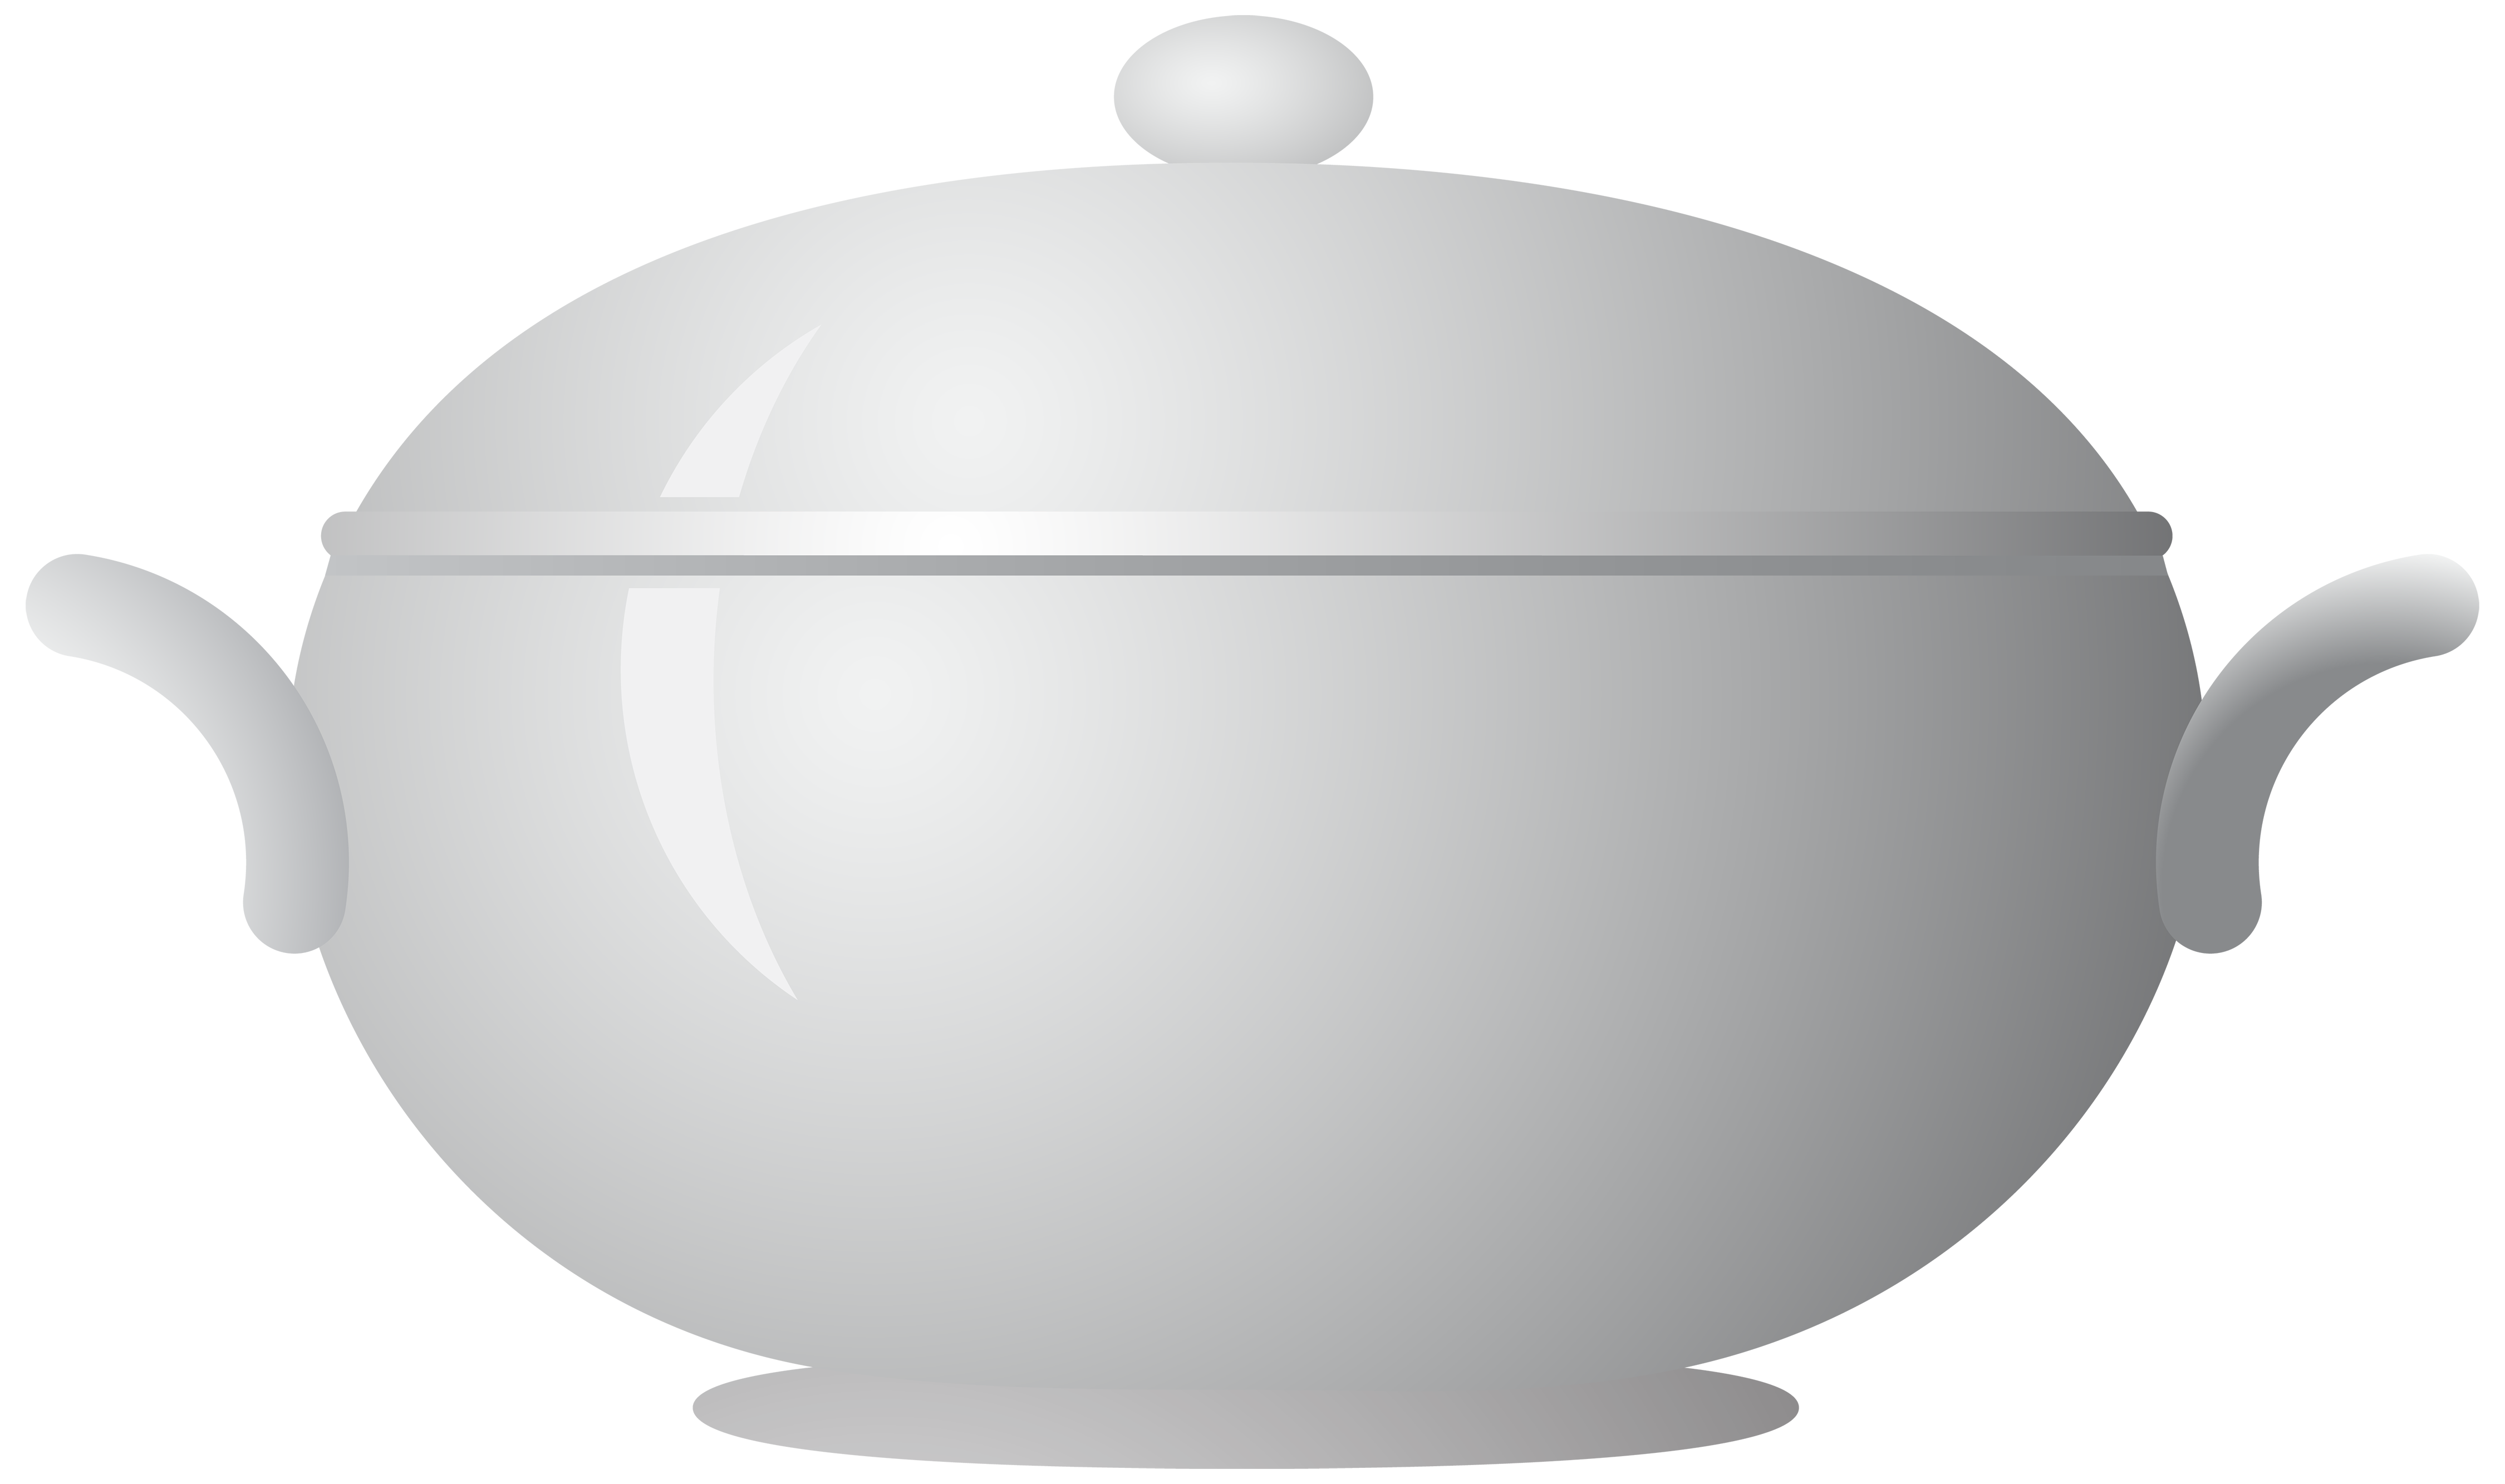 Tureen png best web. Egg clipart soup